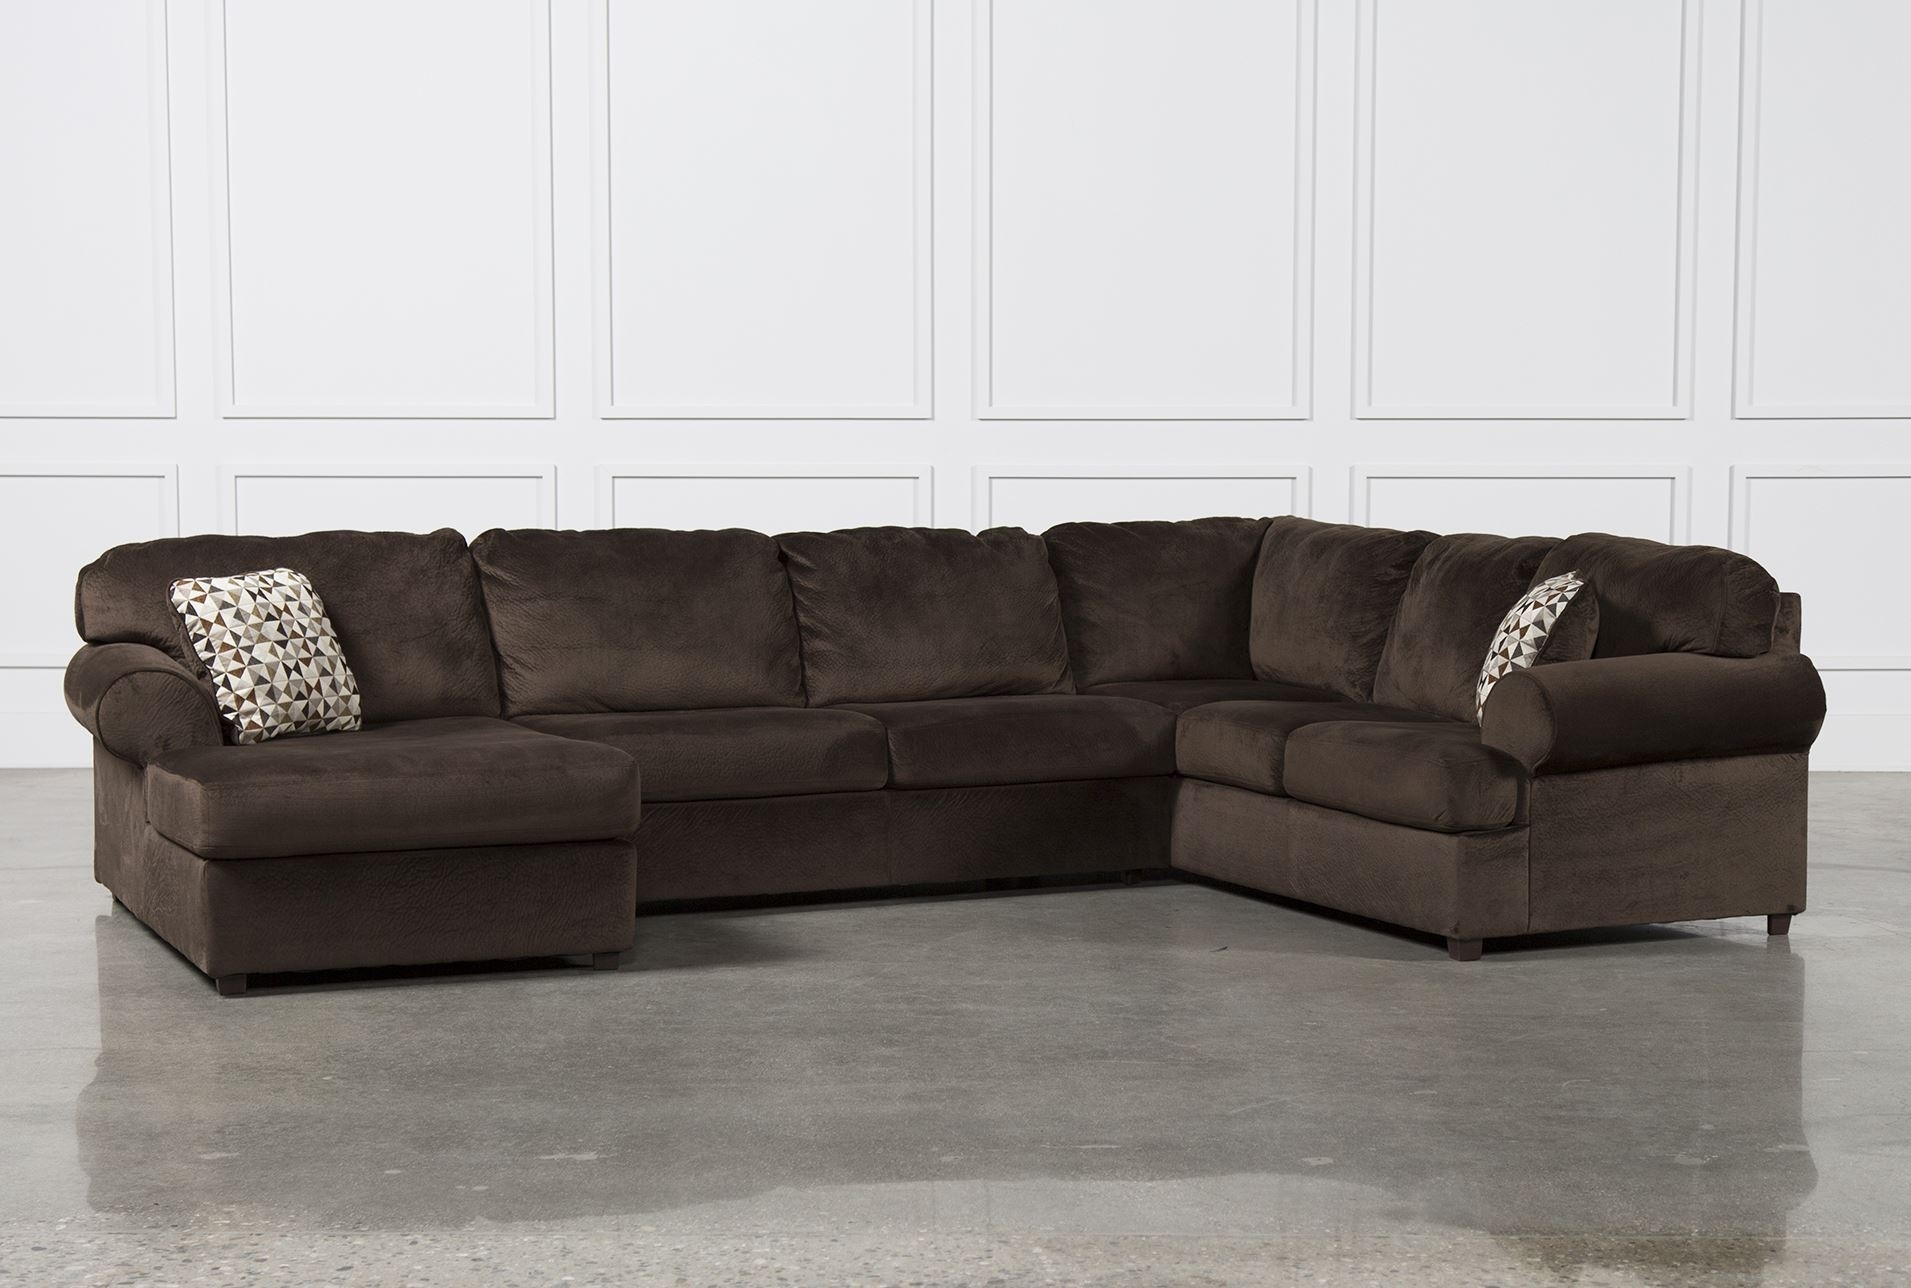 3 Piece Leather Sectional Sofa With Chaise – Cleanupflorida Regarding Gordon 3 Piece Sectionals With Raf Chaise (View 9 of 25)